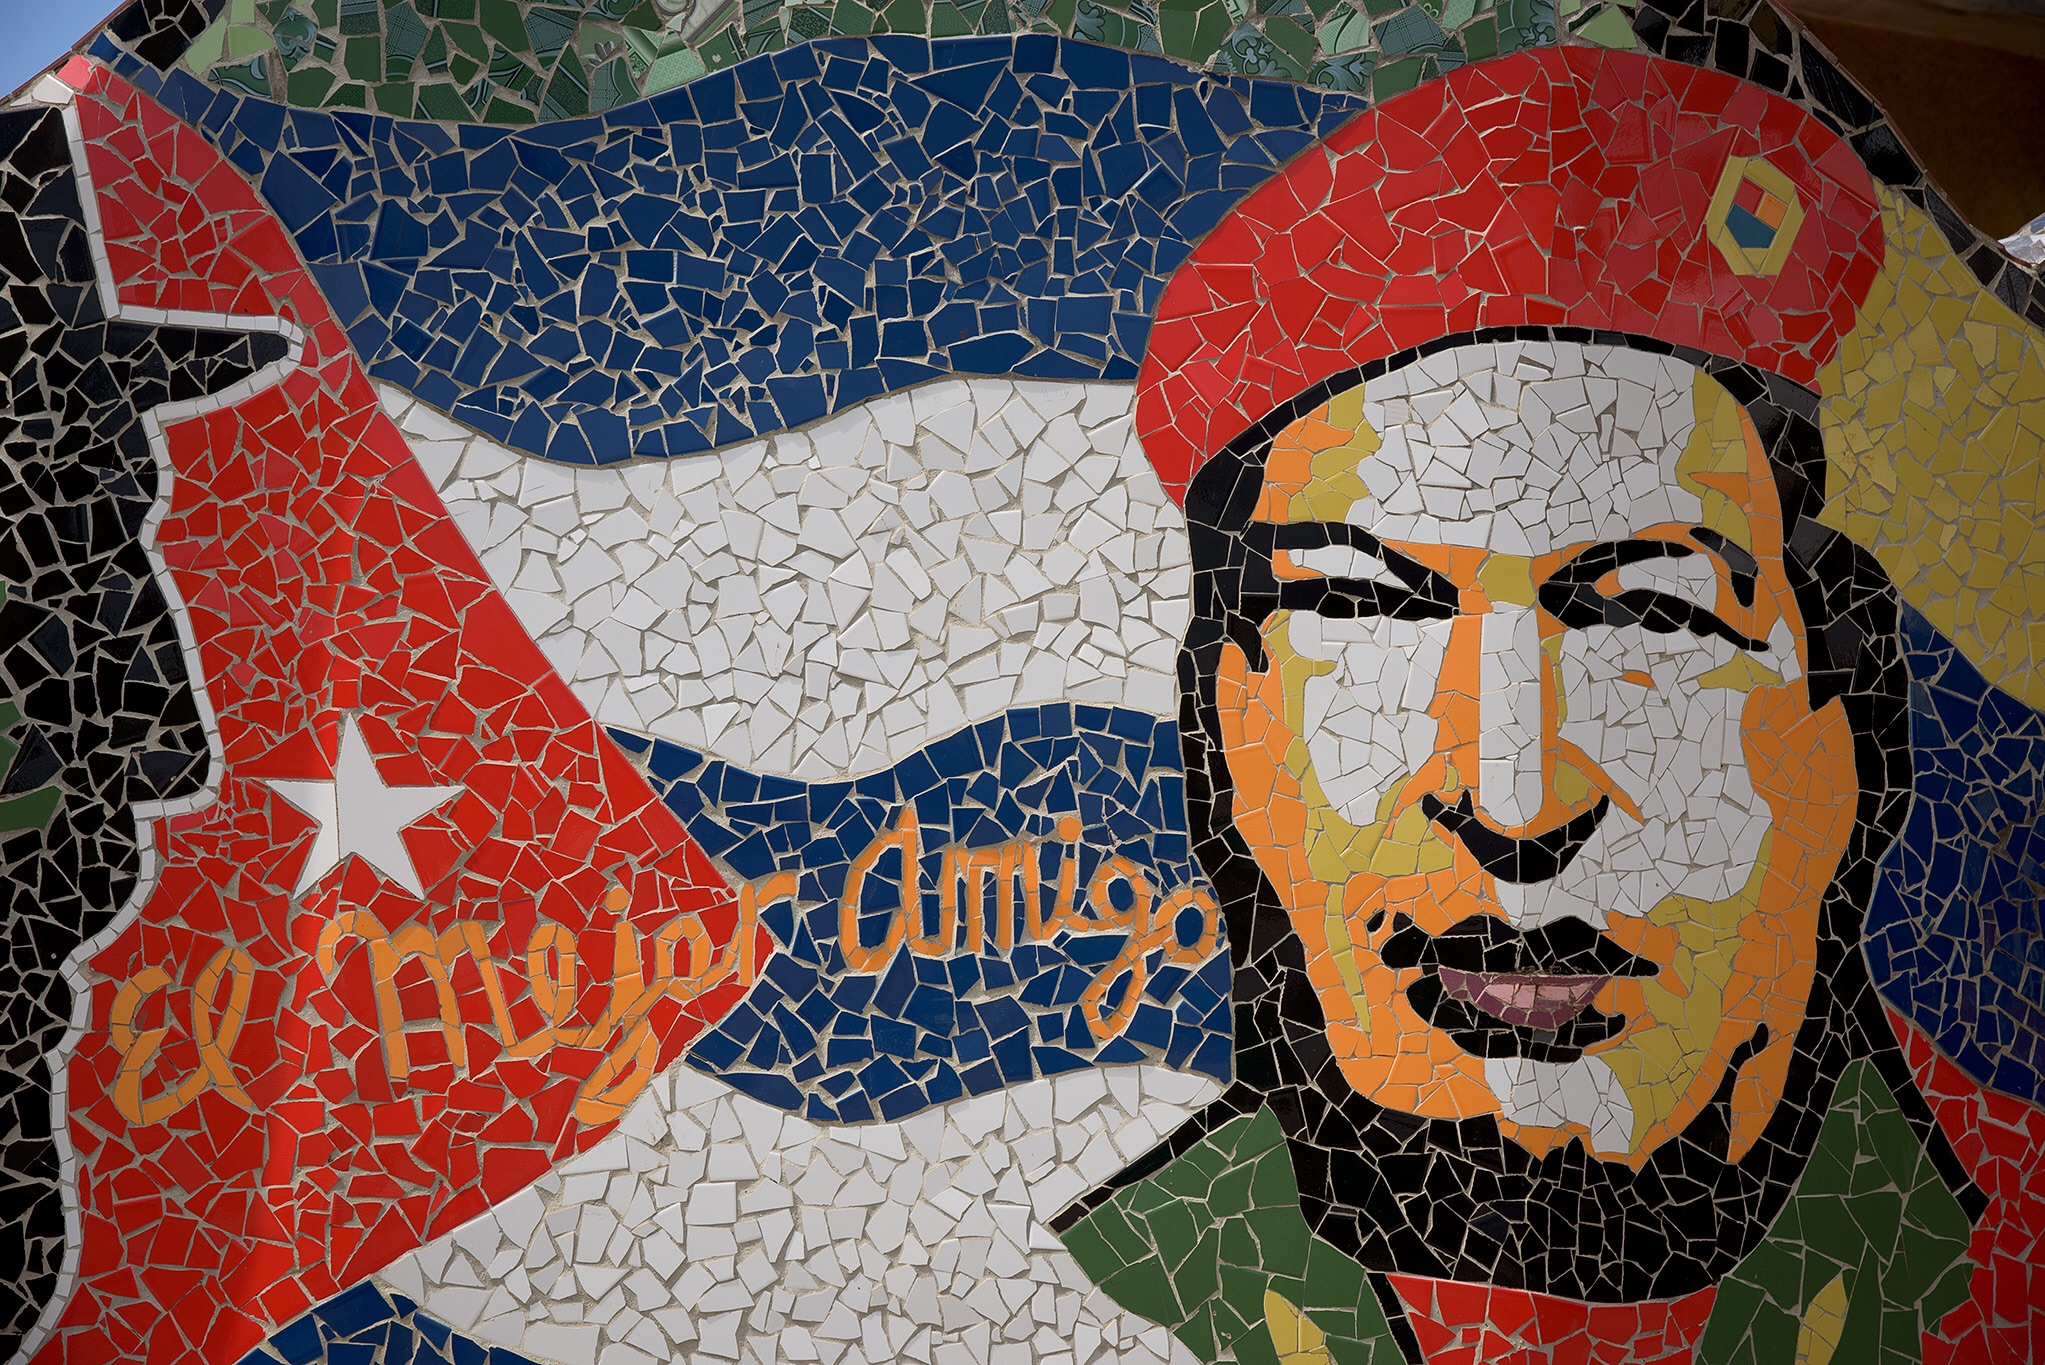 A mosaic of Revolution leader Che Guevara at the Jose Fuster Community Art Project